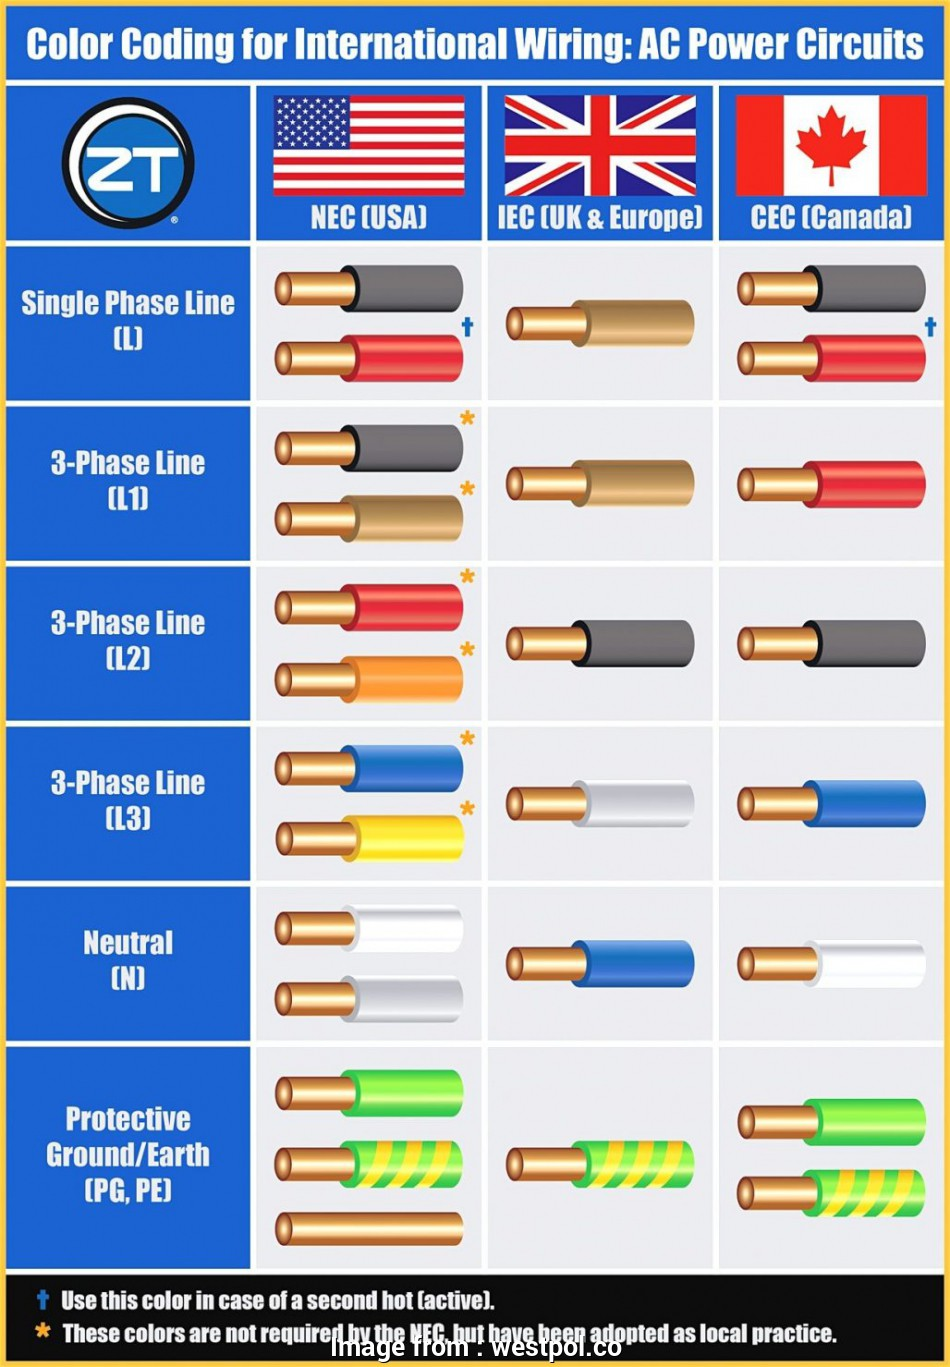 Groovy Electrical Cable Size Chart Amps Uk Cleaver Funky Amps Rating Cable Wiring 101 Swasaxxcnl